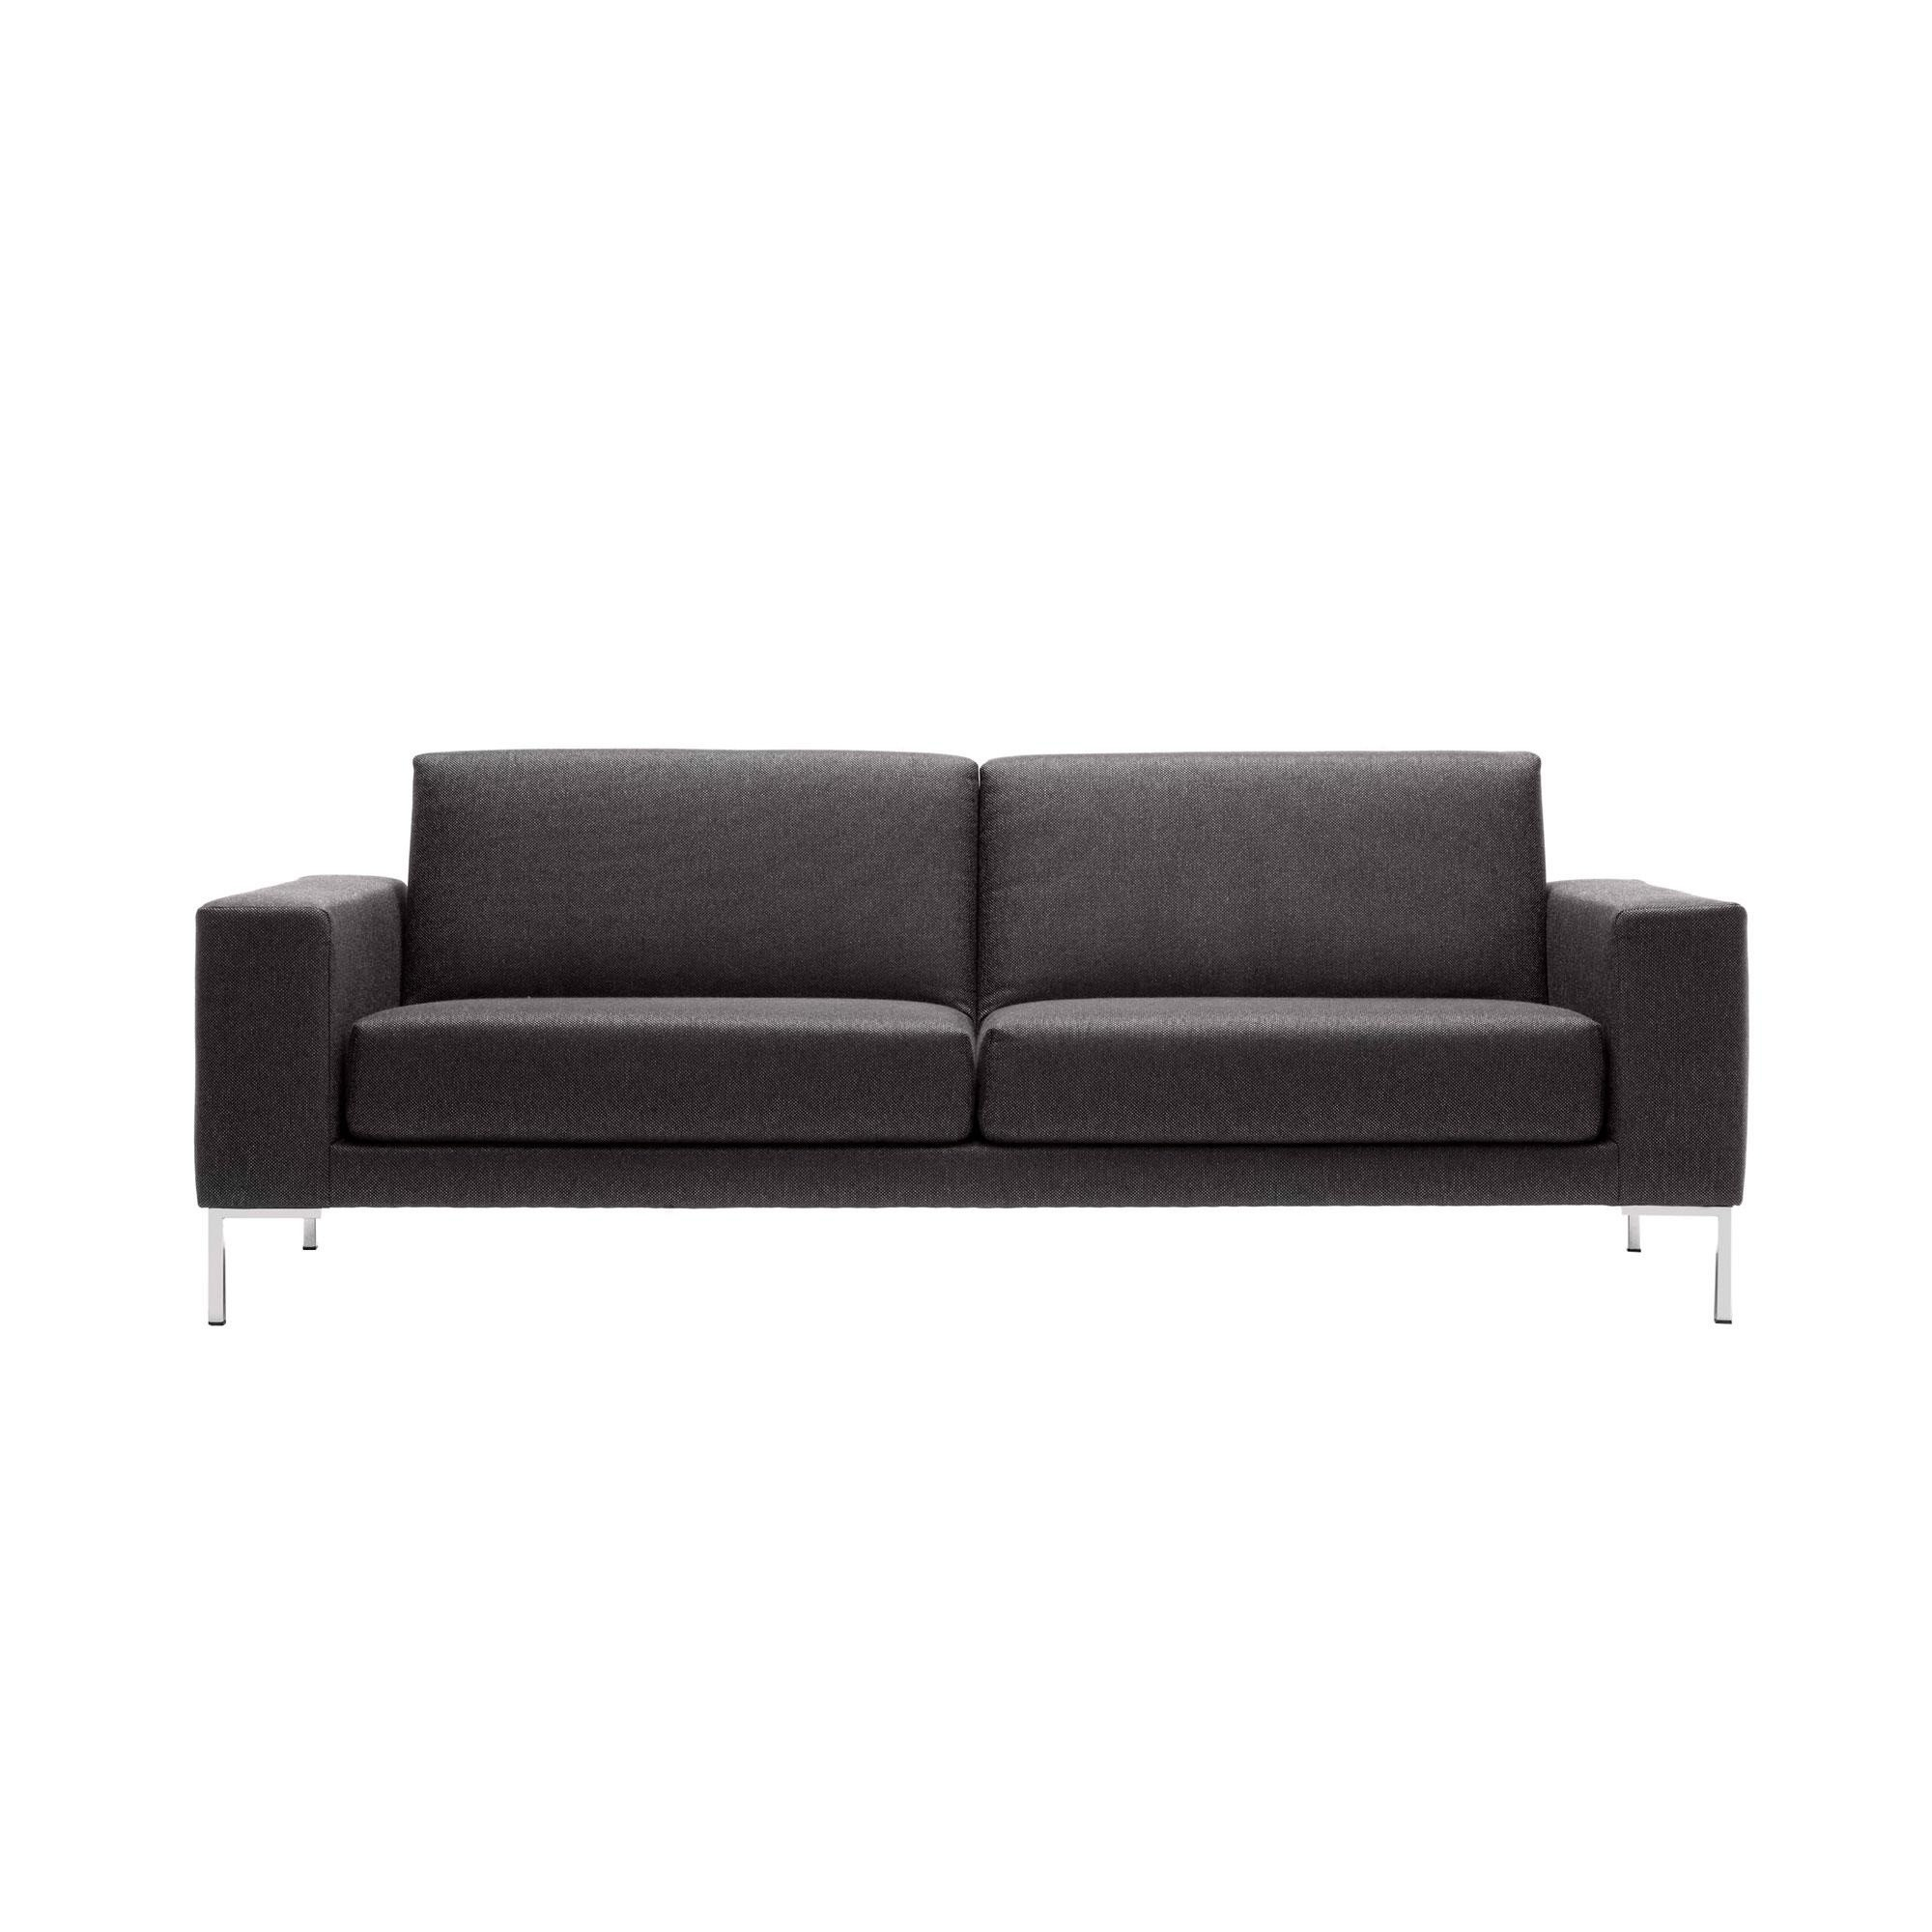 freistil 183 3 zits sofa freistil rolf benz. Black Bedroom Furniture Sets. Home Design Ideas